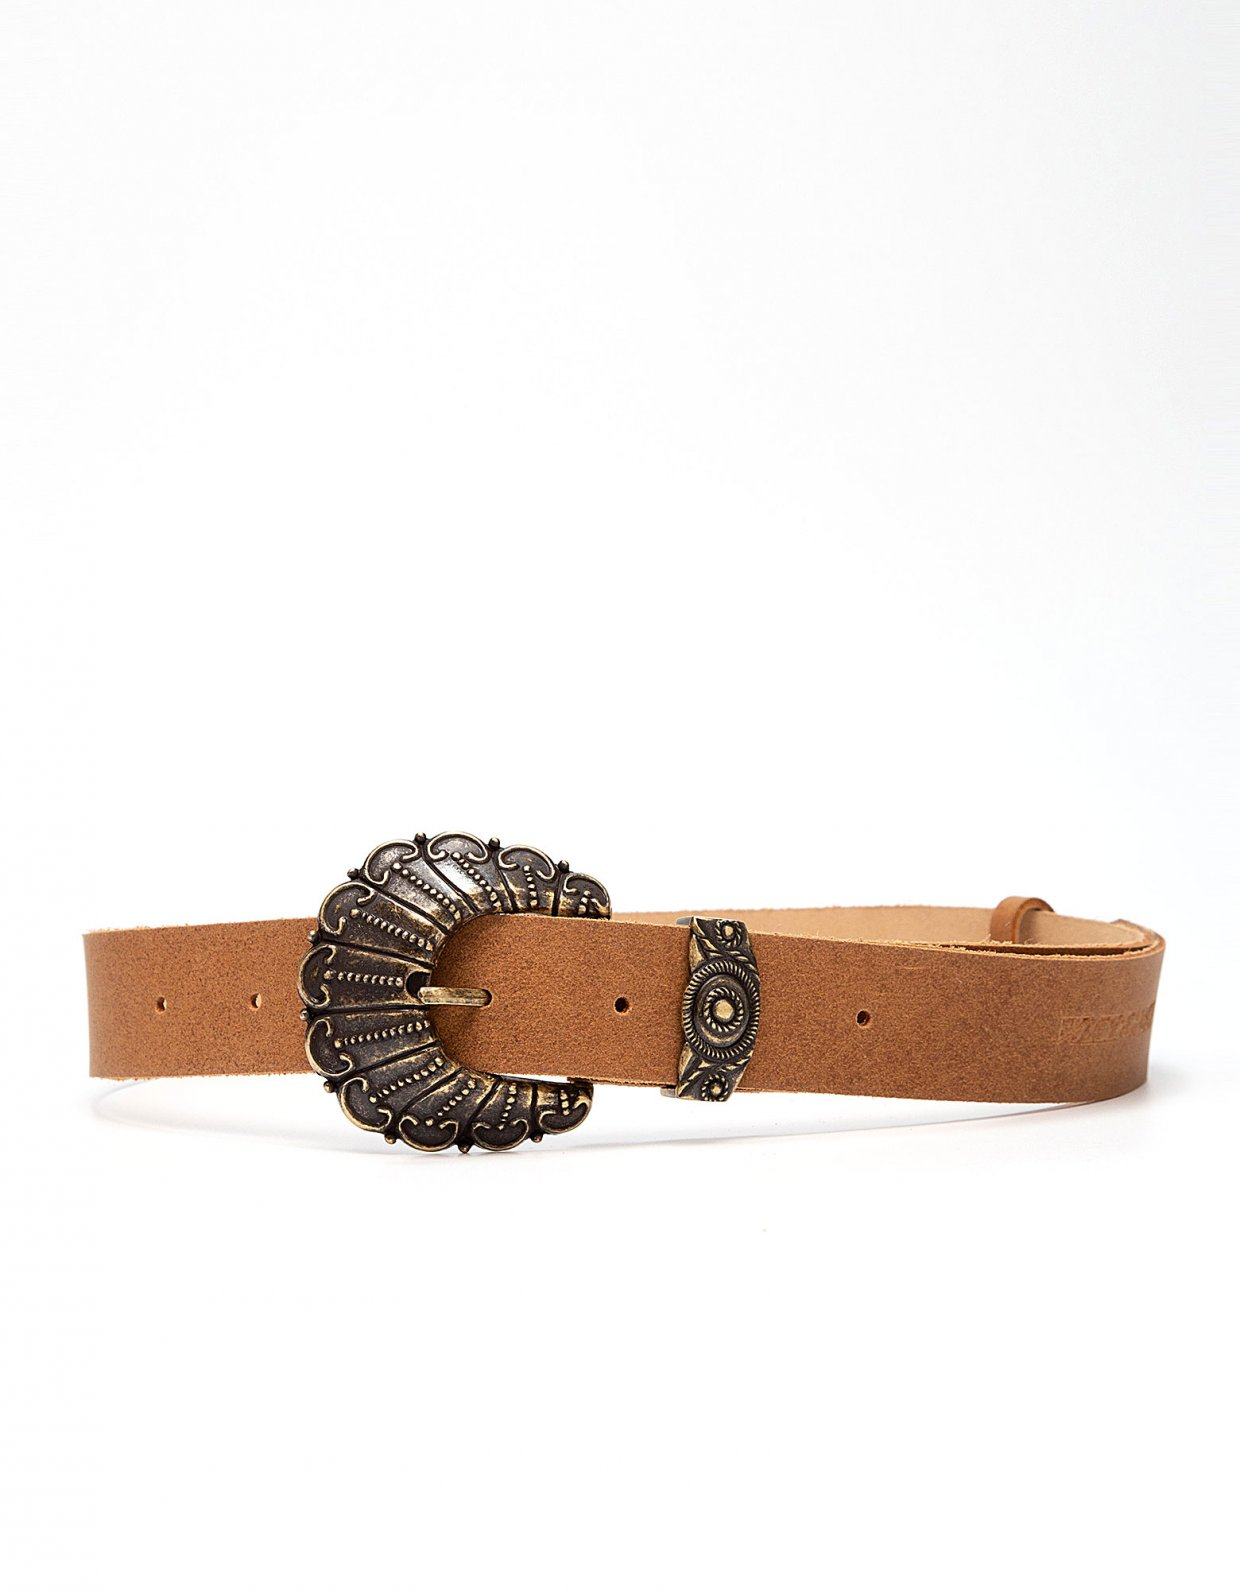 Peace & Chaos Petals leather belt tanned